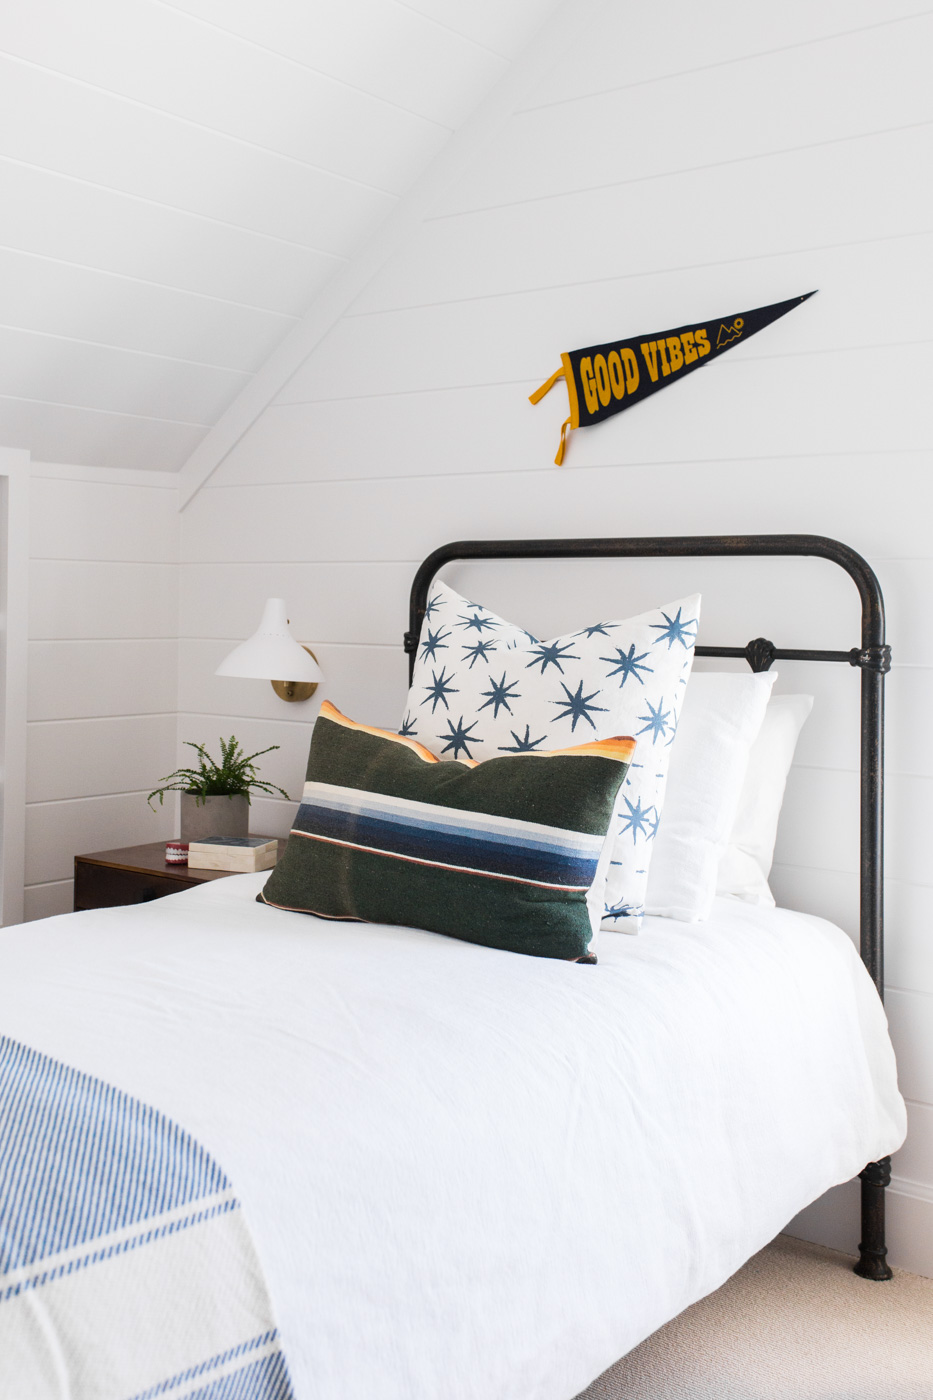 Decorative flag above head of twin bed